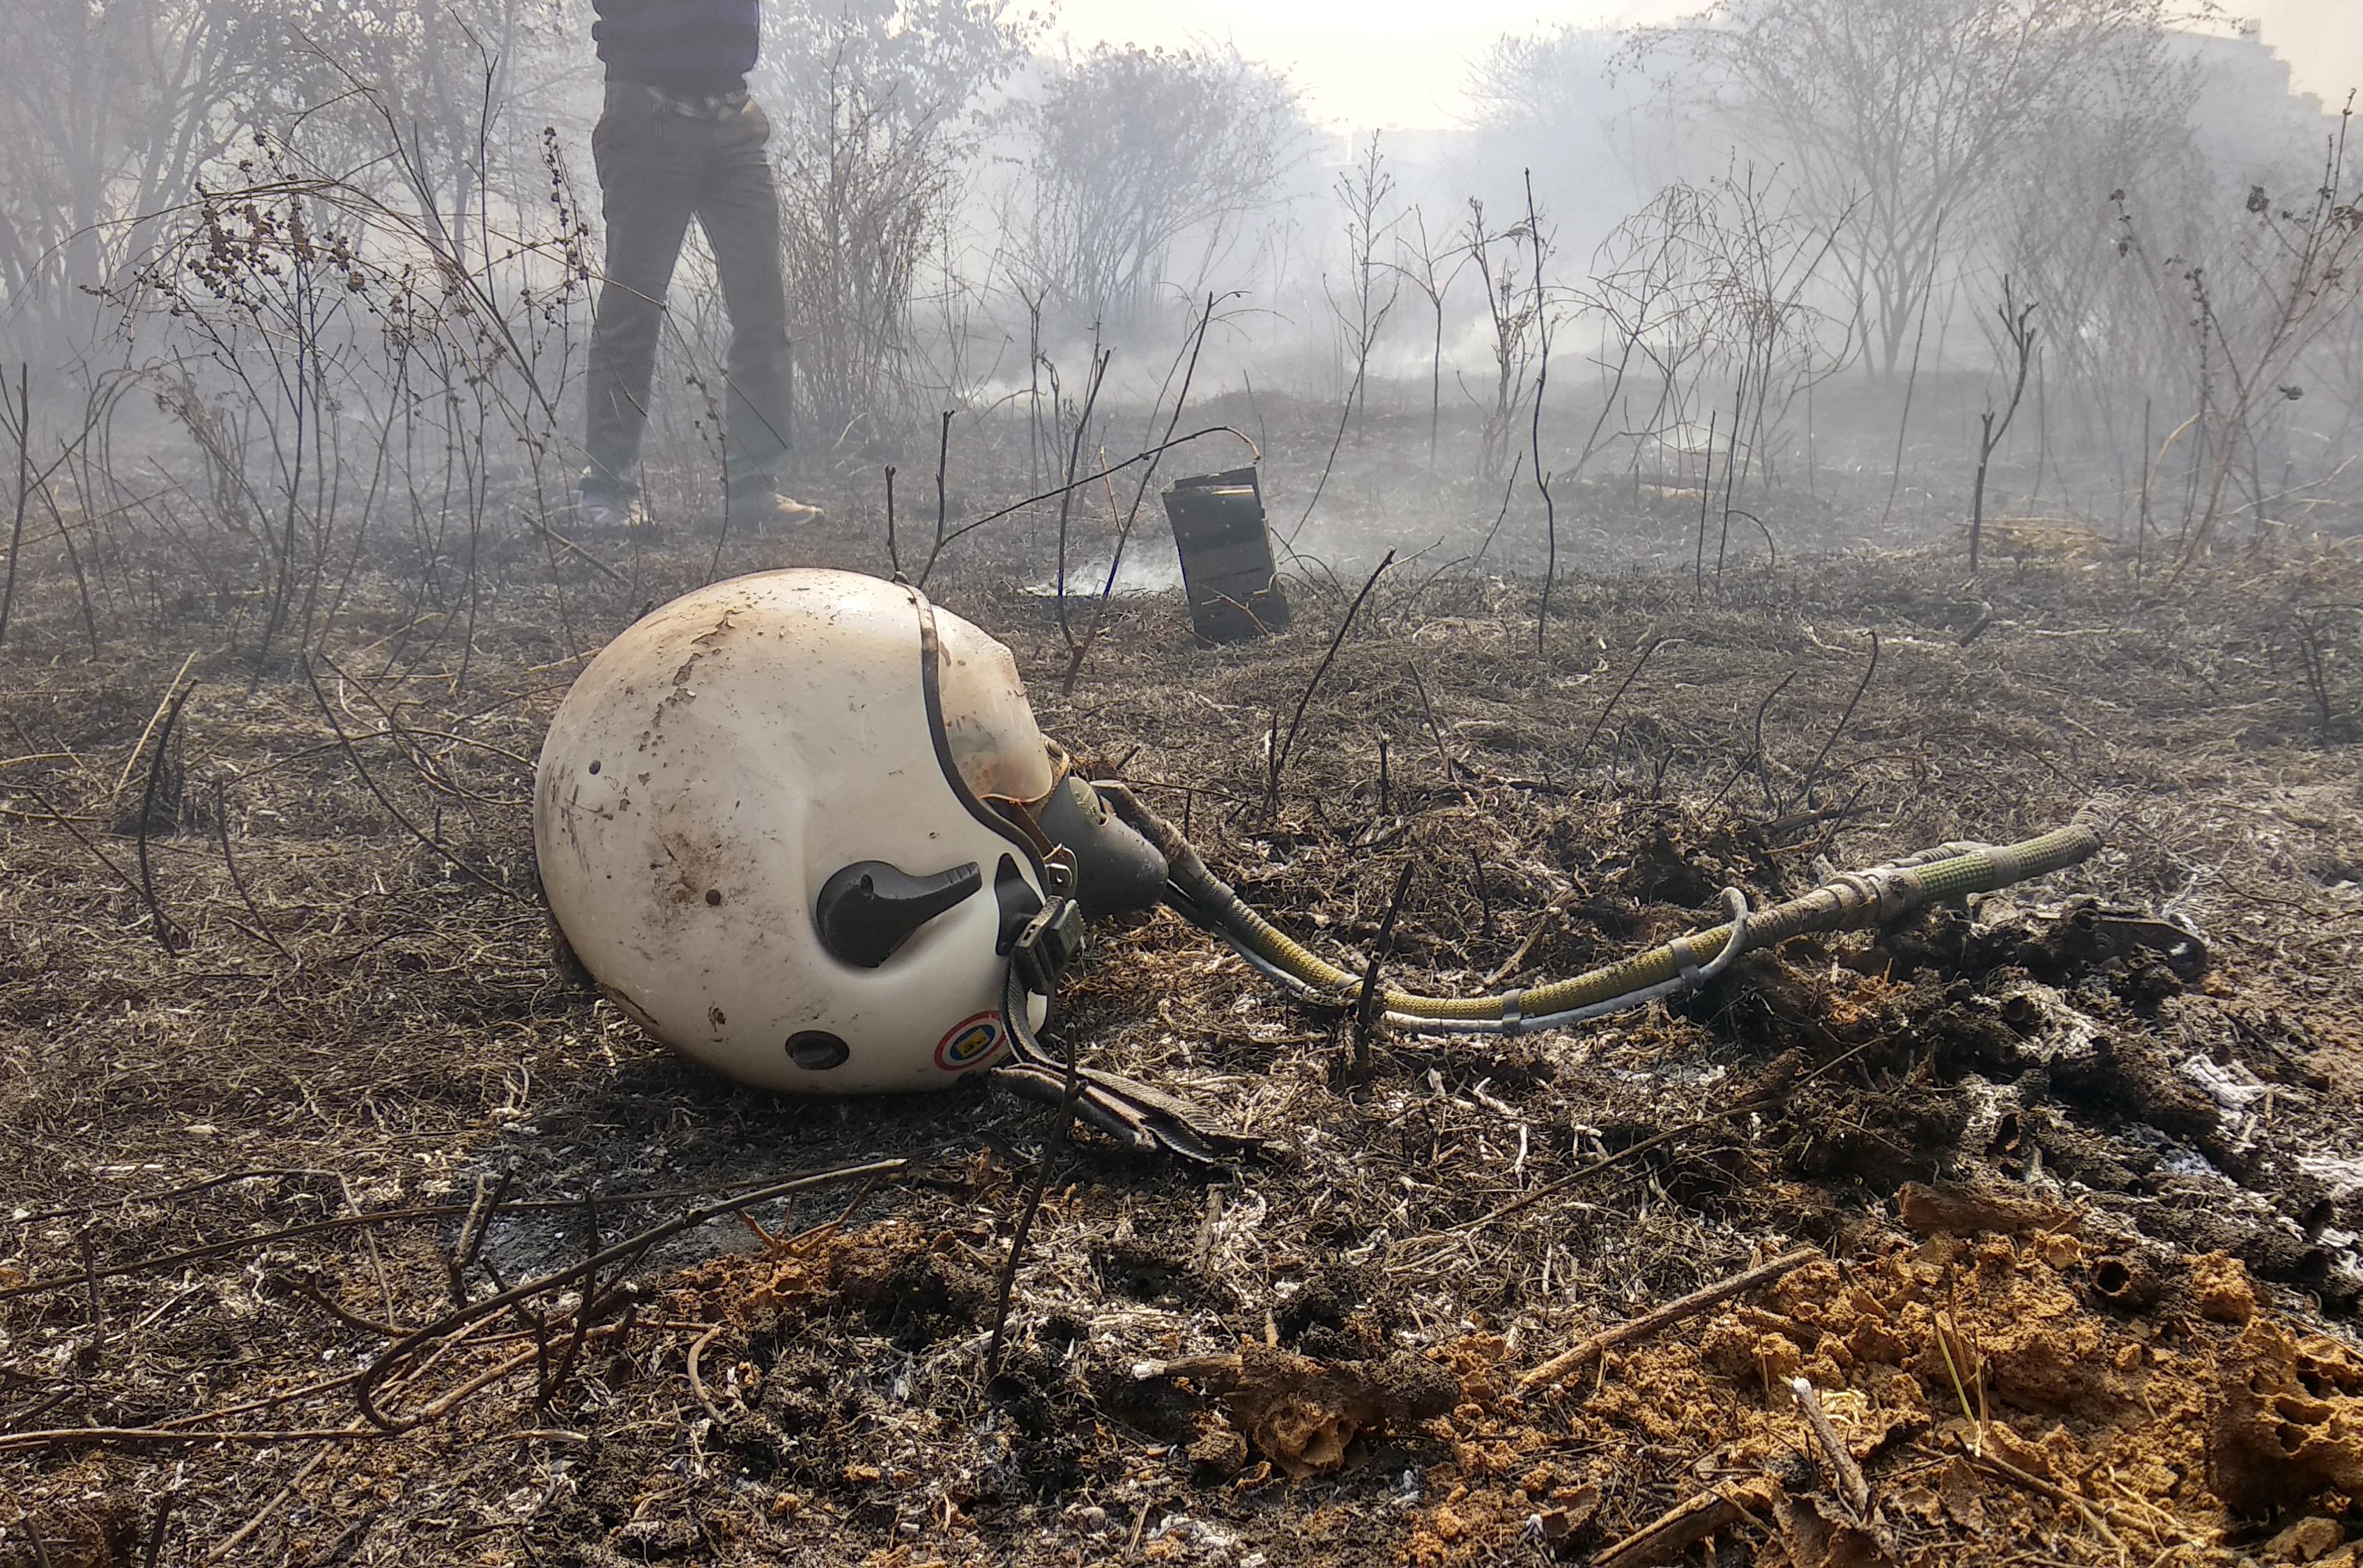 Fighter jet crashes in Bengaluru, two pilots dead